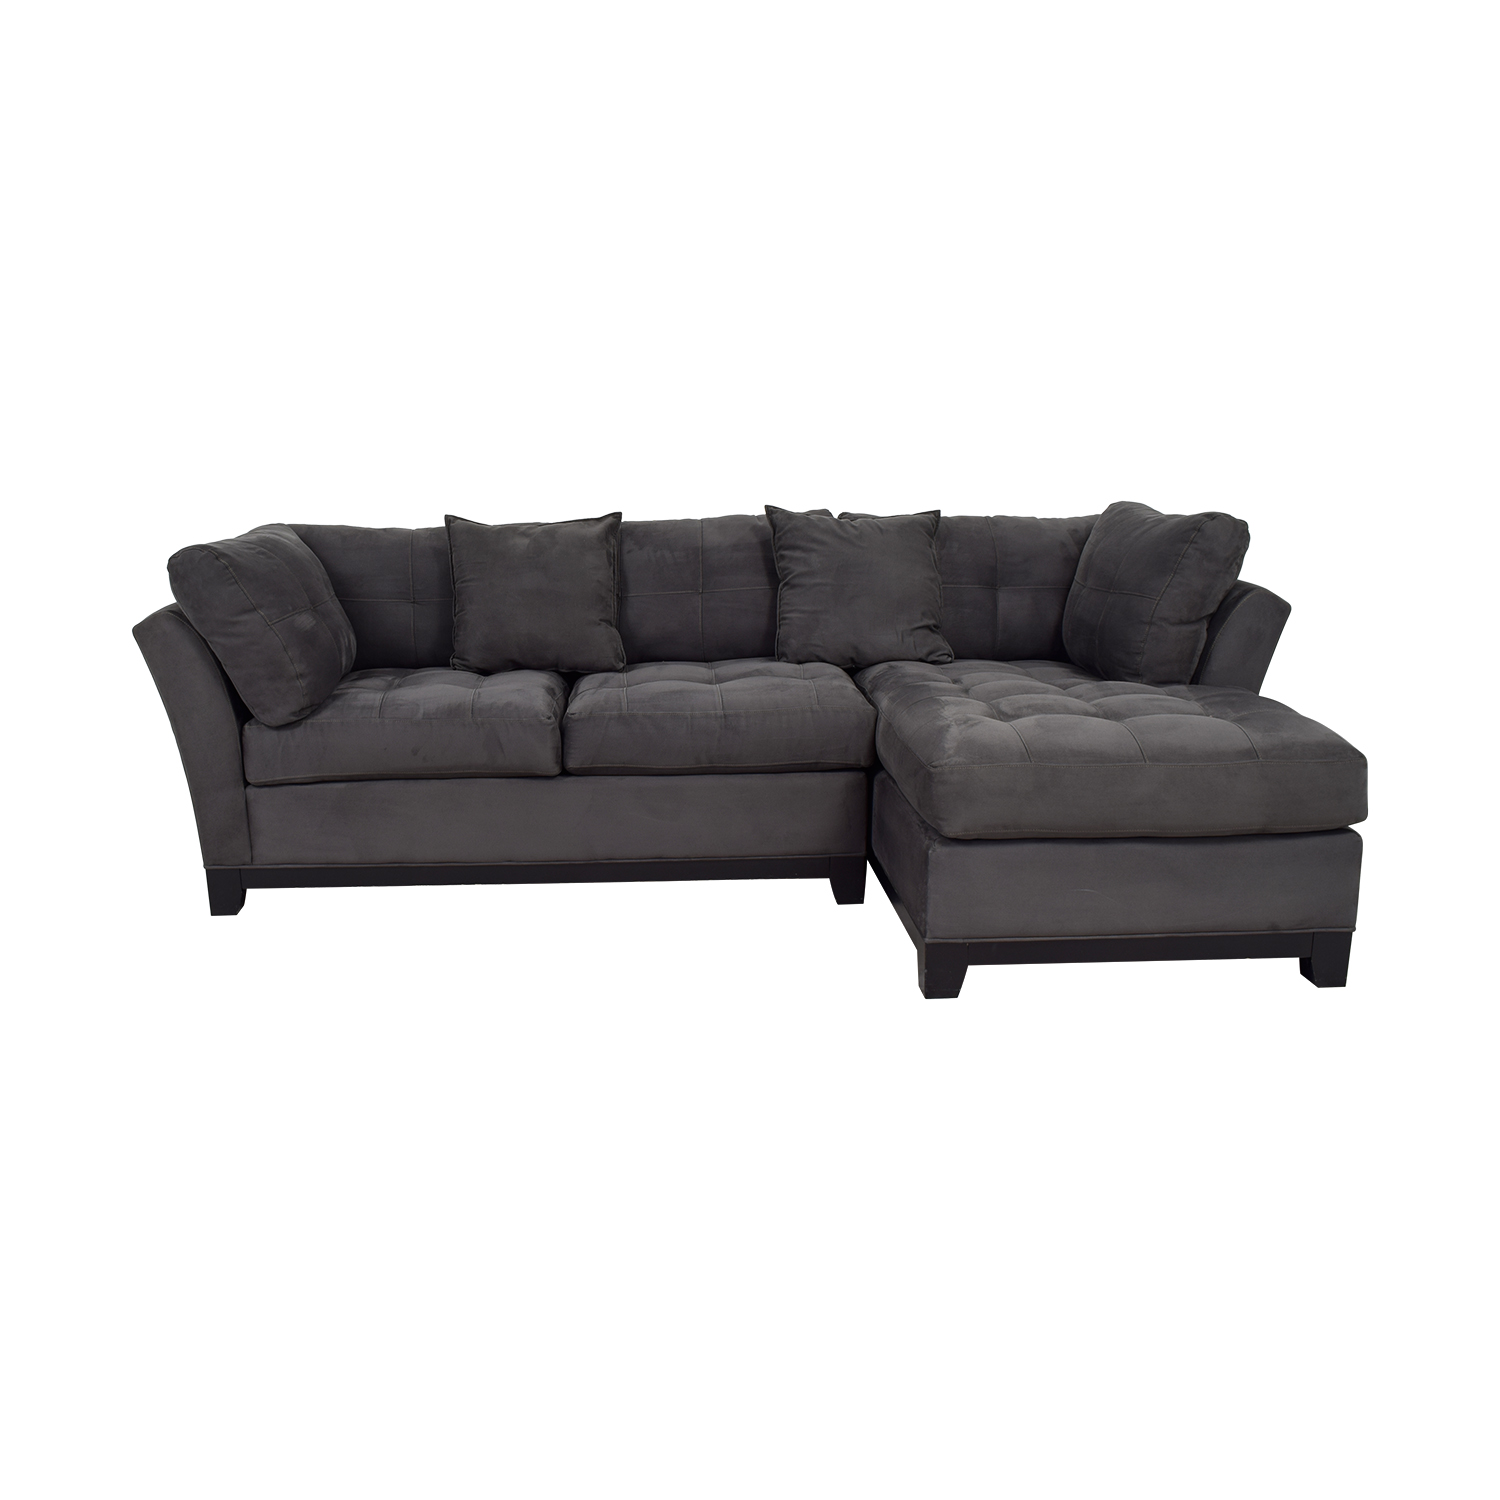 Raymour & Flanigan Raymour & Flanigan Cindy Crawford Grey Chaise Sectional price